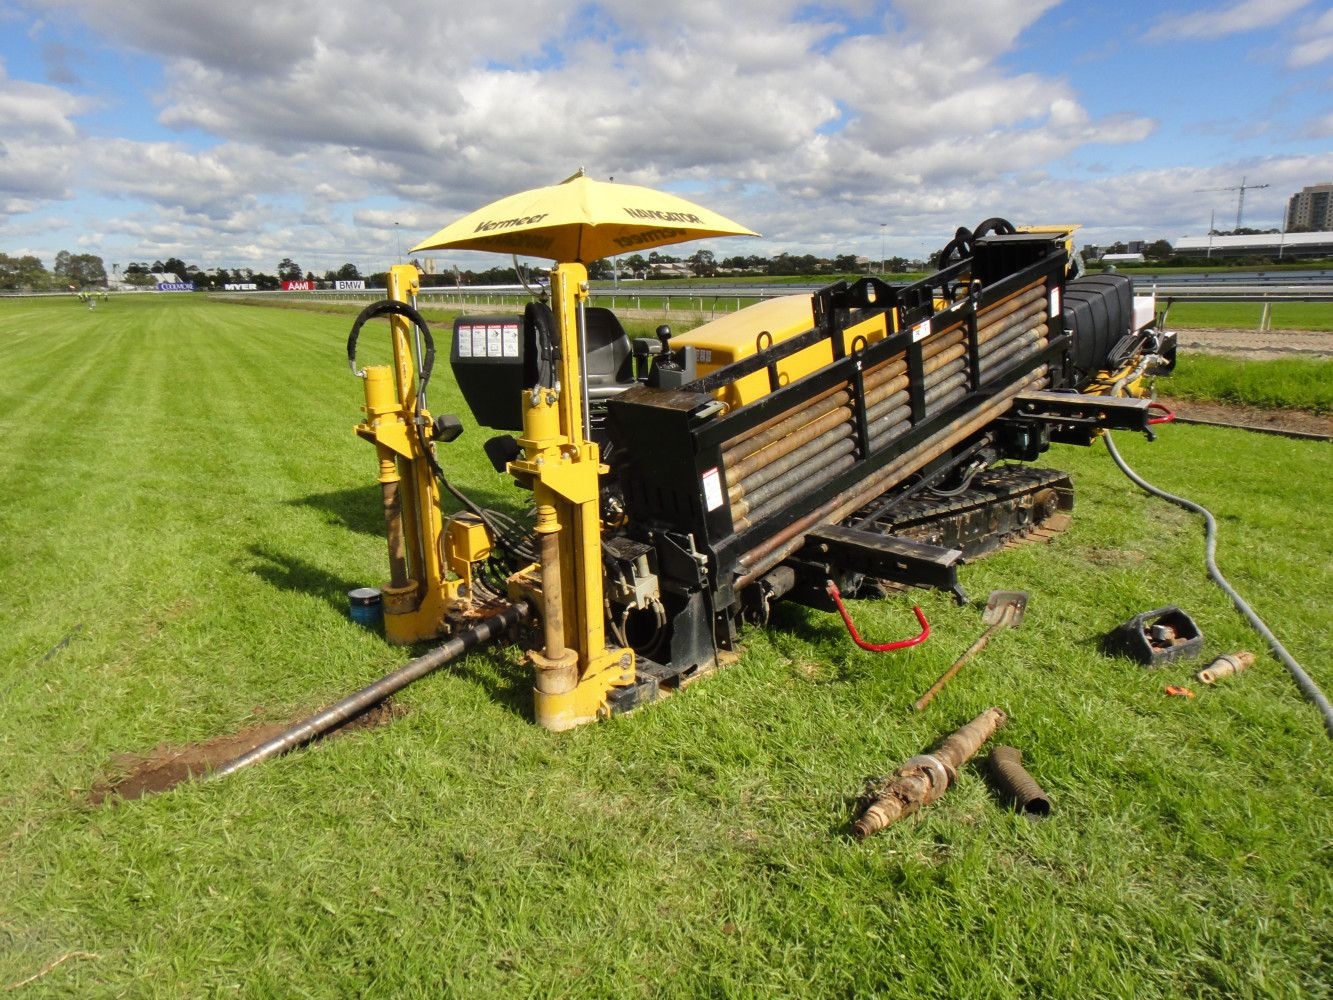 Directional Drilling Services Market, By Type, Services